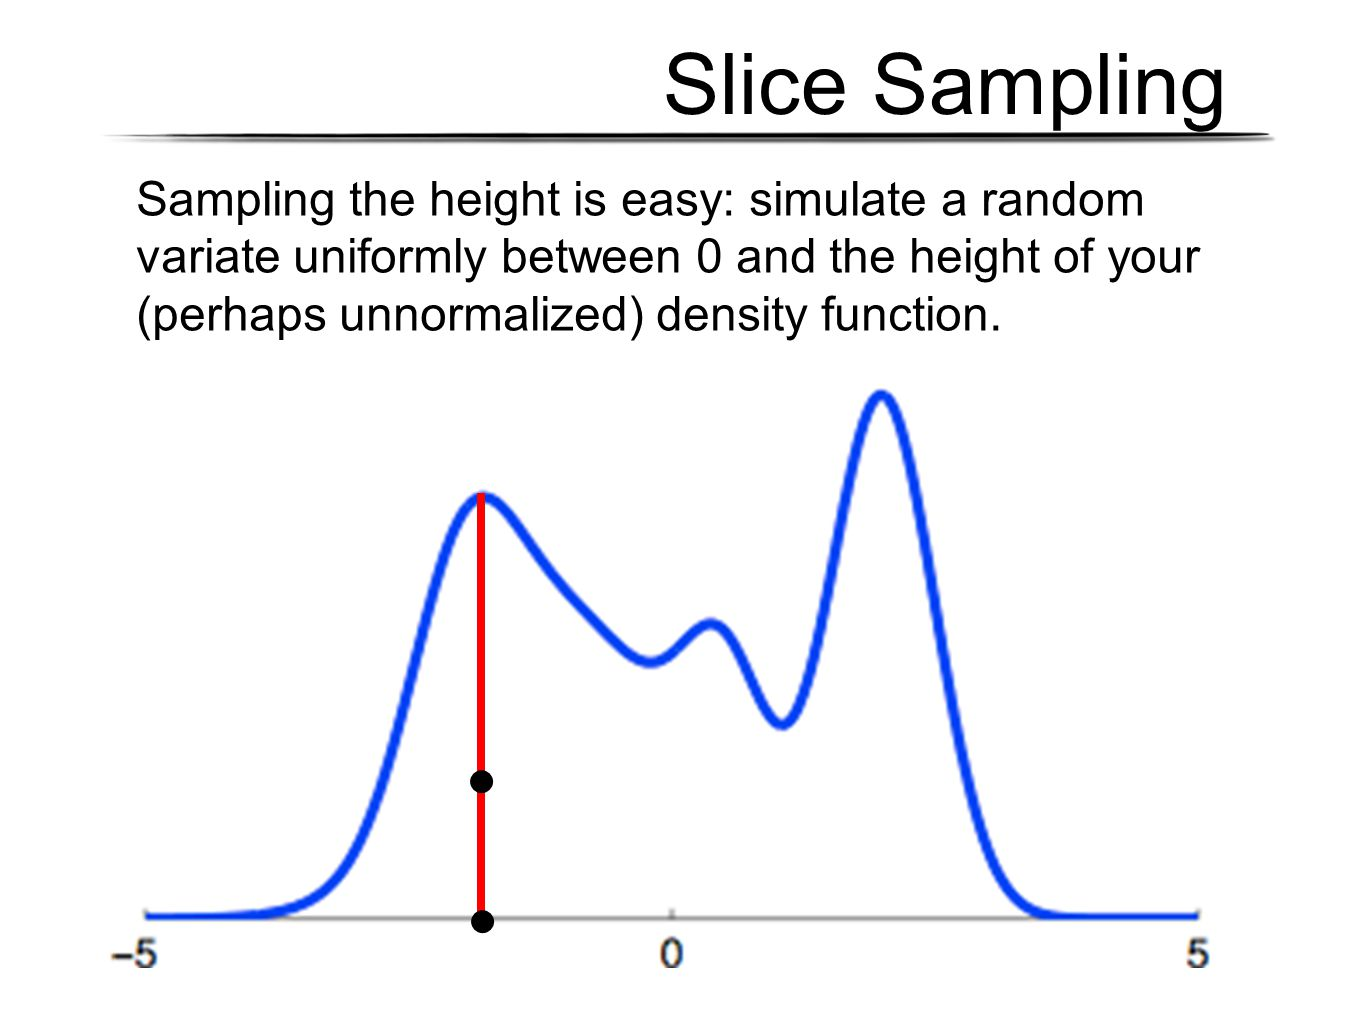 Slice Sampling Sampling the height is easy: simulate a random variate uniformly between 0 and the height of your (perhaps unnormalized) density functi